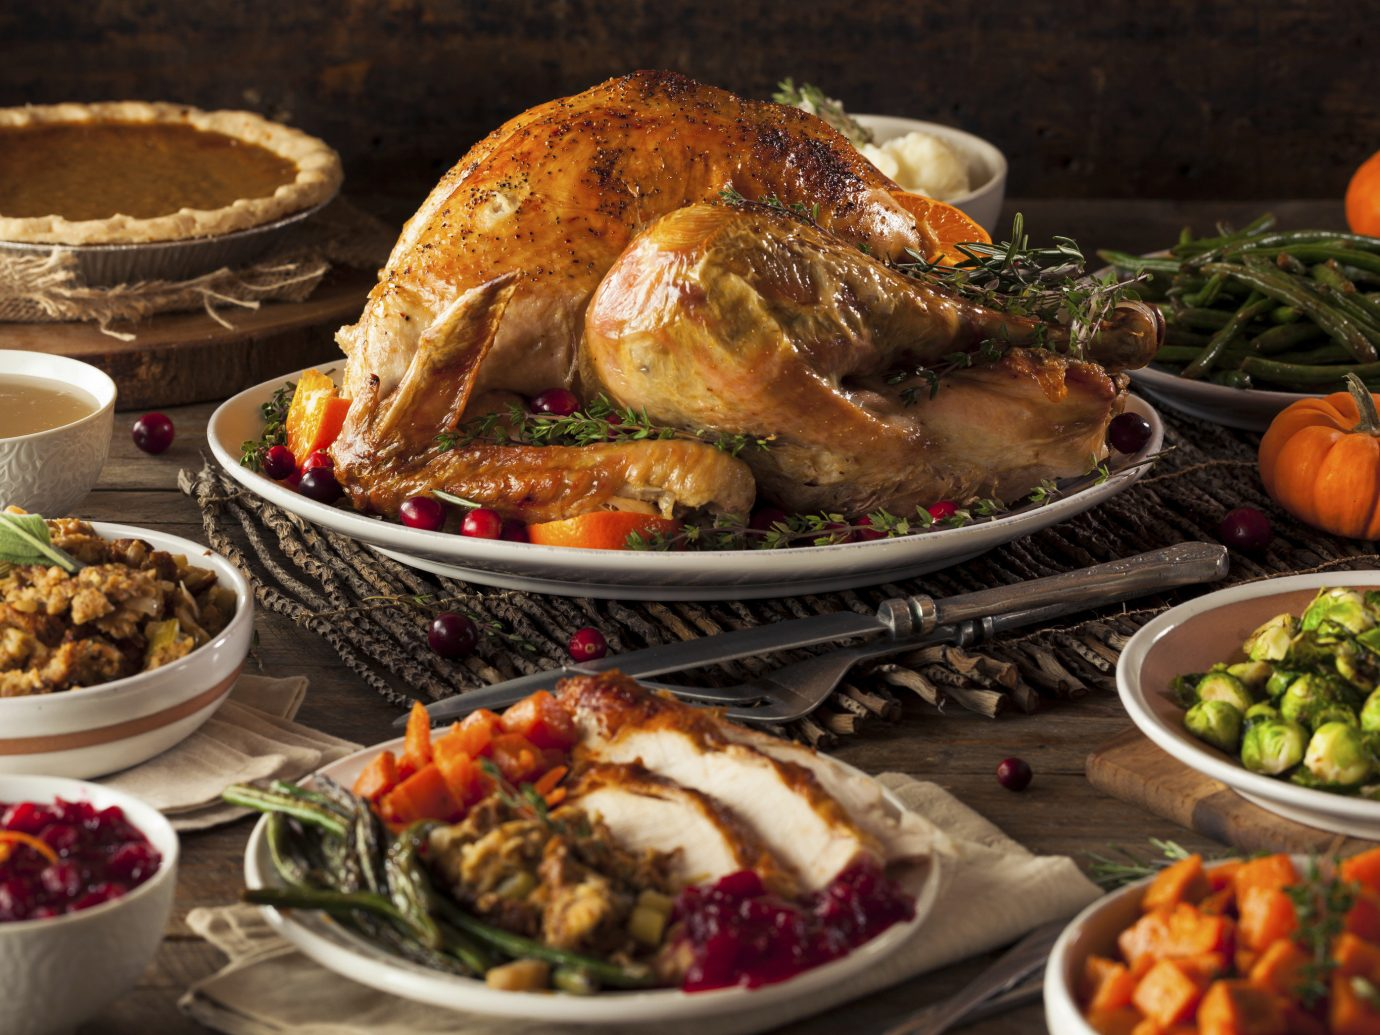 Food + Drink Gift Guides Hotels Style + Design Travel Shop Trip Ideas food plate dish meal thanksgiving dinner vegetable dinner christmas dinner meat cuisine thanksgiving roasting holiday different supper several assorted containing